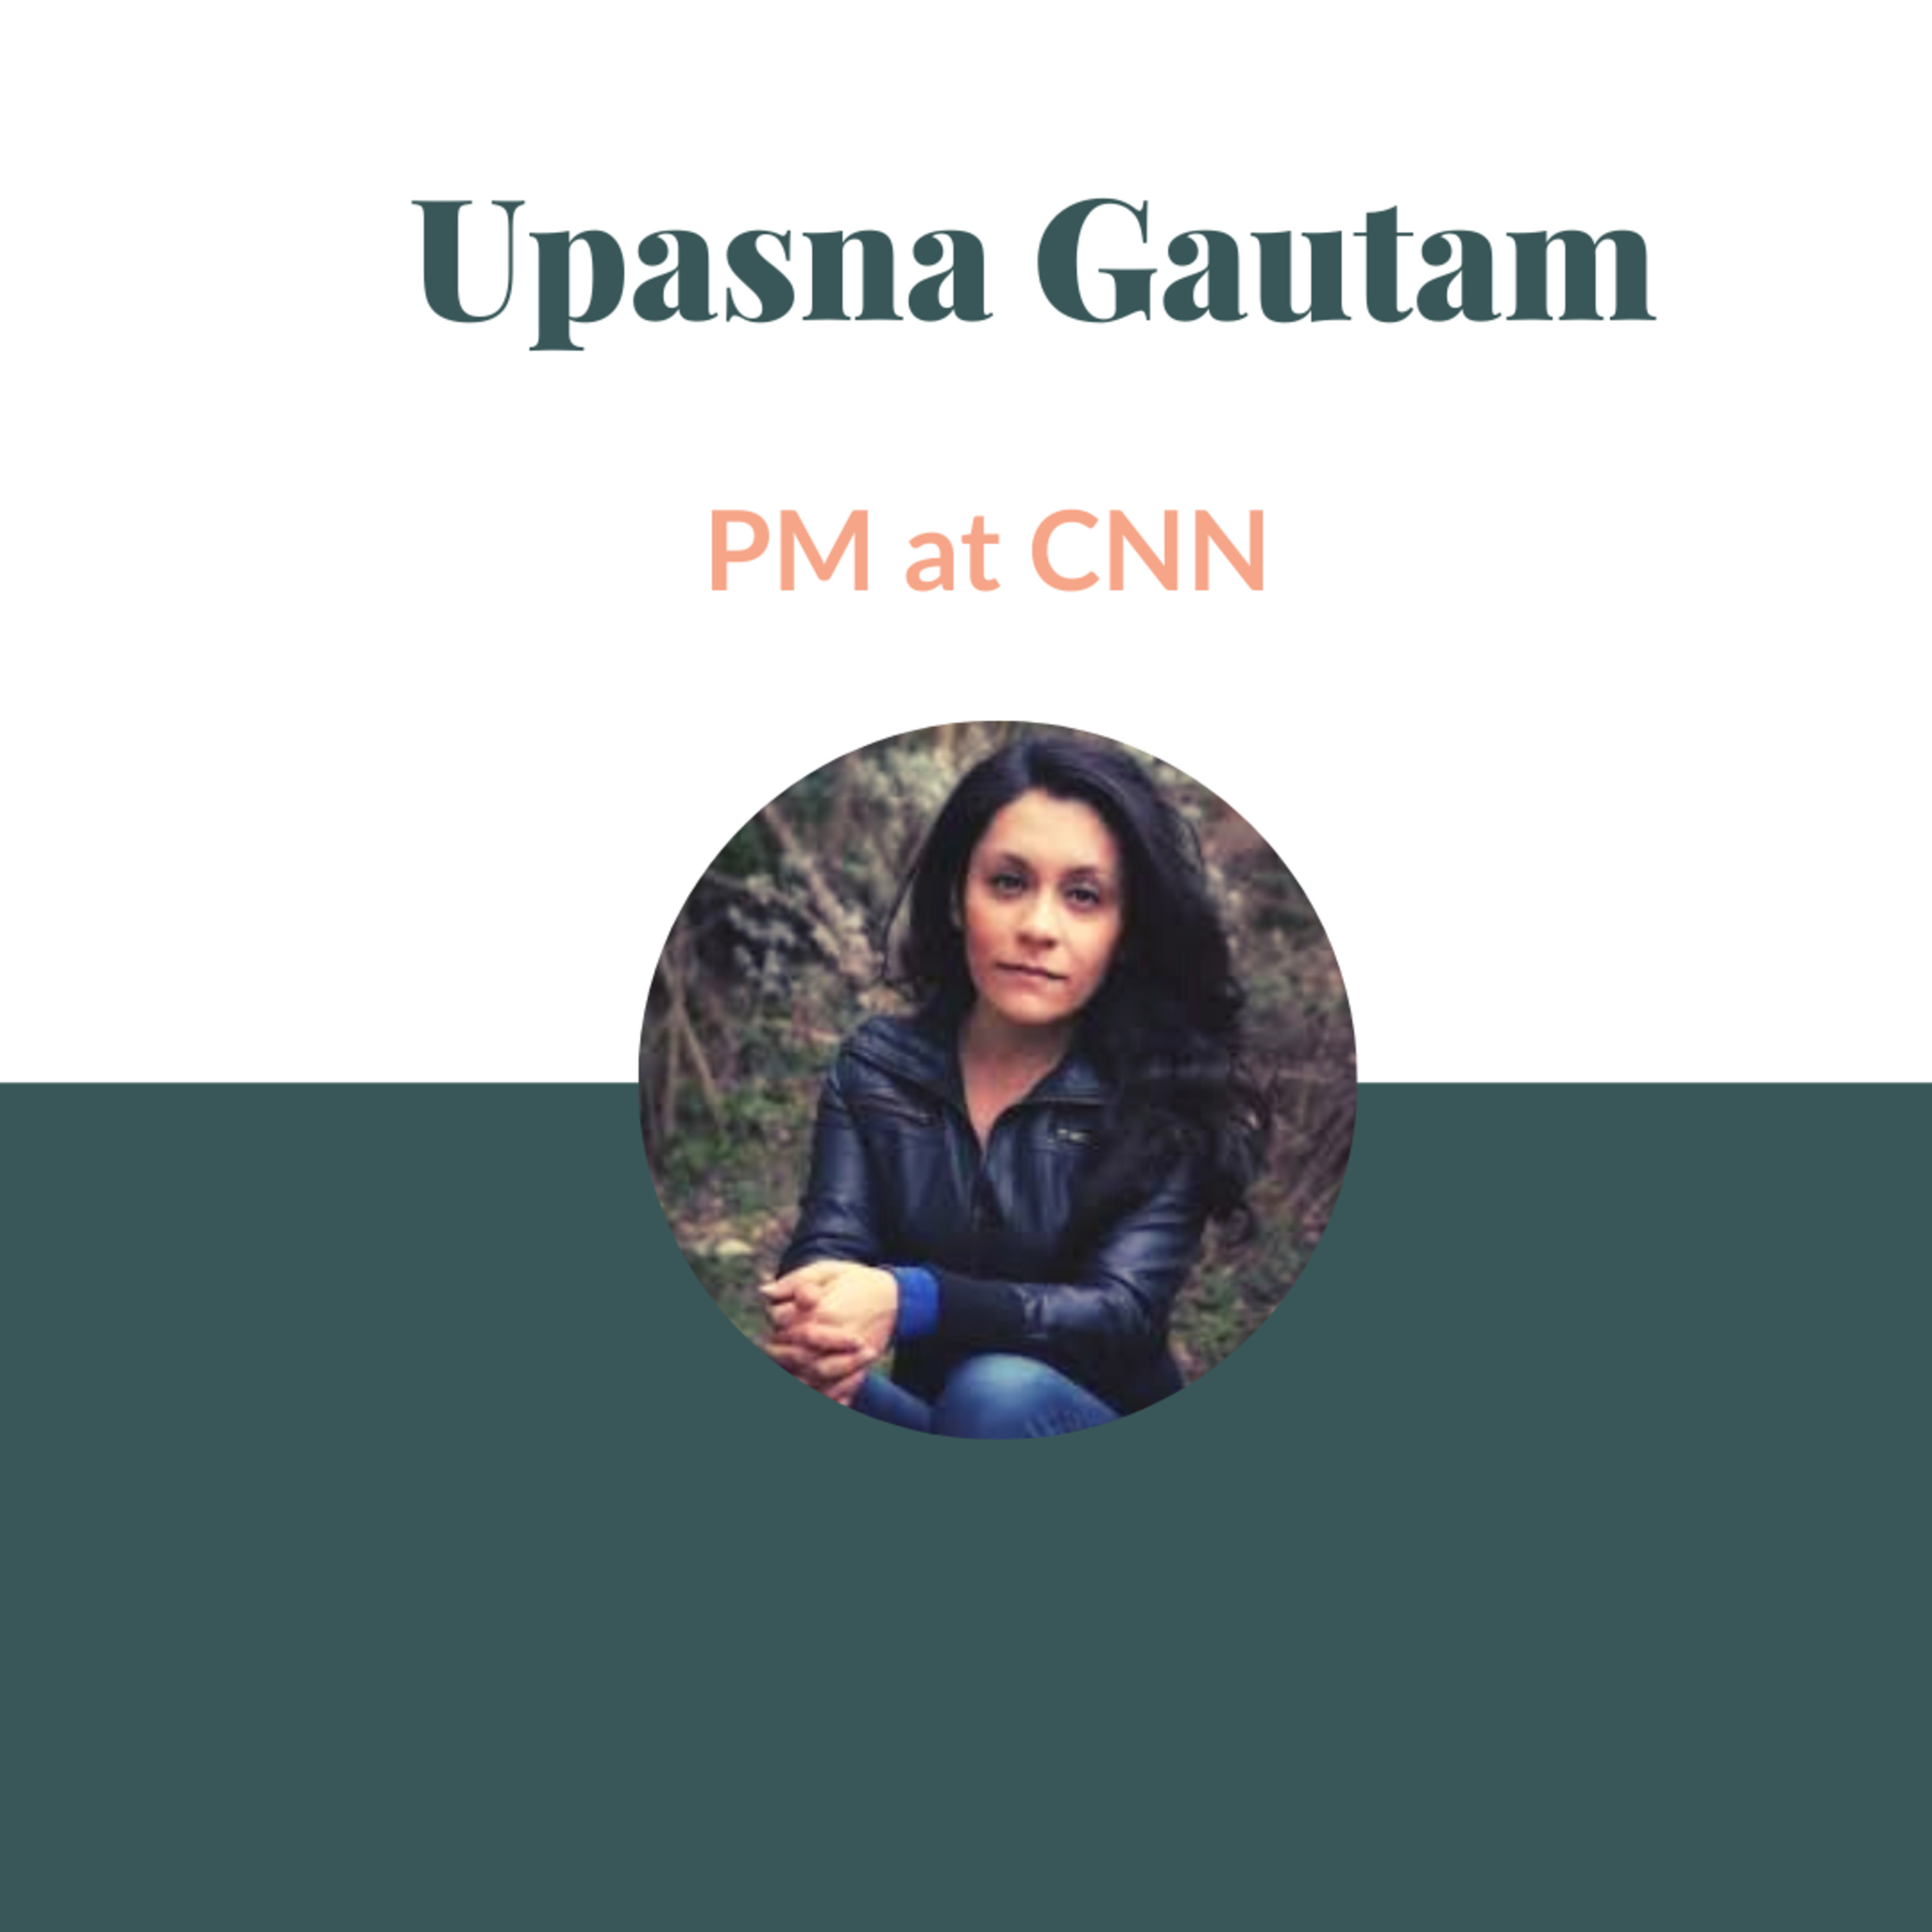 """""""Don't just inspire people, but show them how it is done"""", says Upasna Gautam, PM at CNN."""